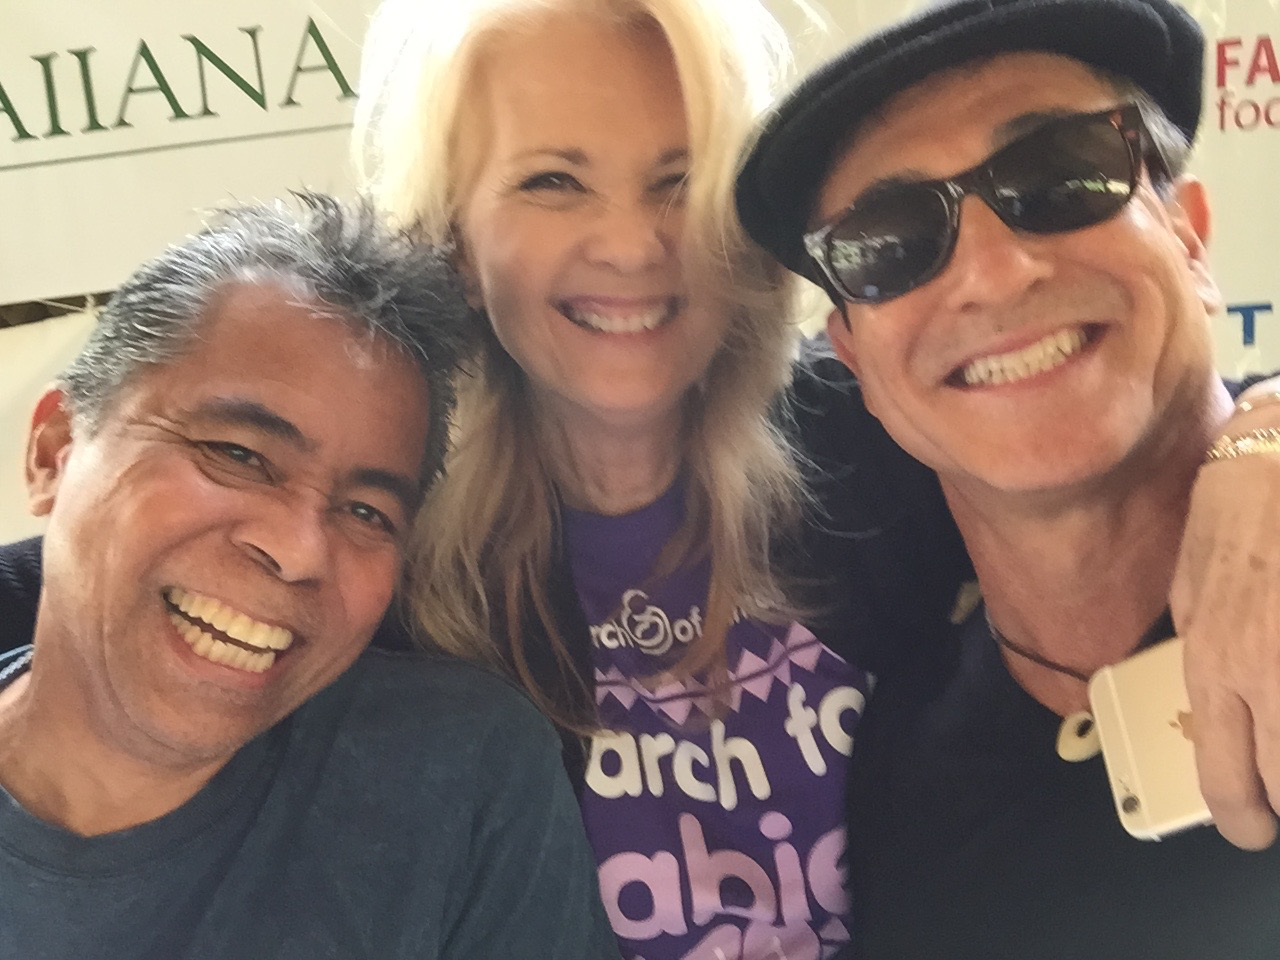 Radio Personality Ed Kanoe, Pacific Region Director of March of Dimes, Carmella Hernandez and Mike Dandurand of Kustom Sounds Kauai